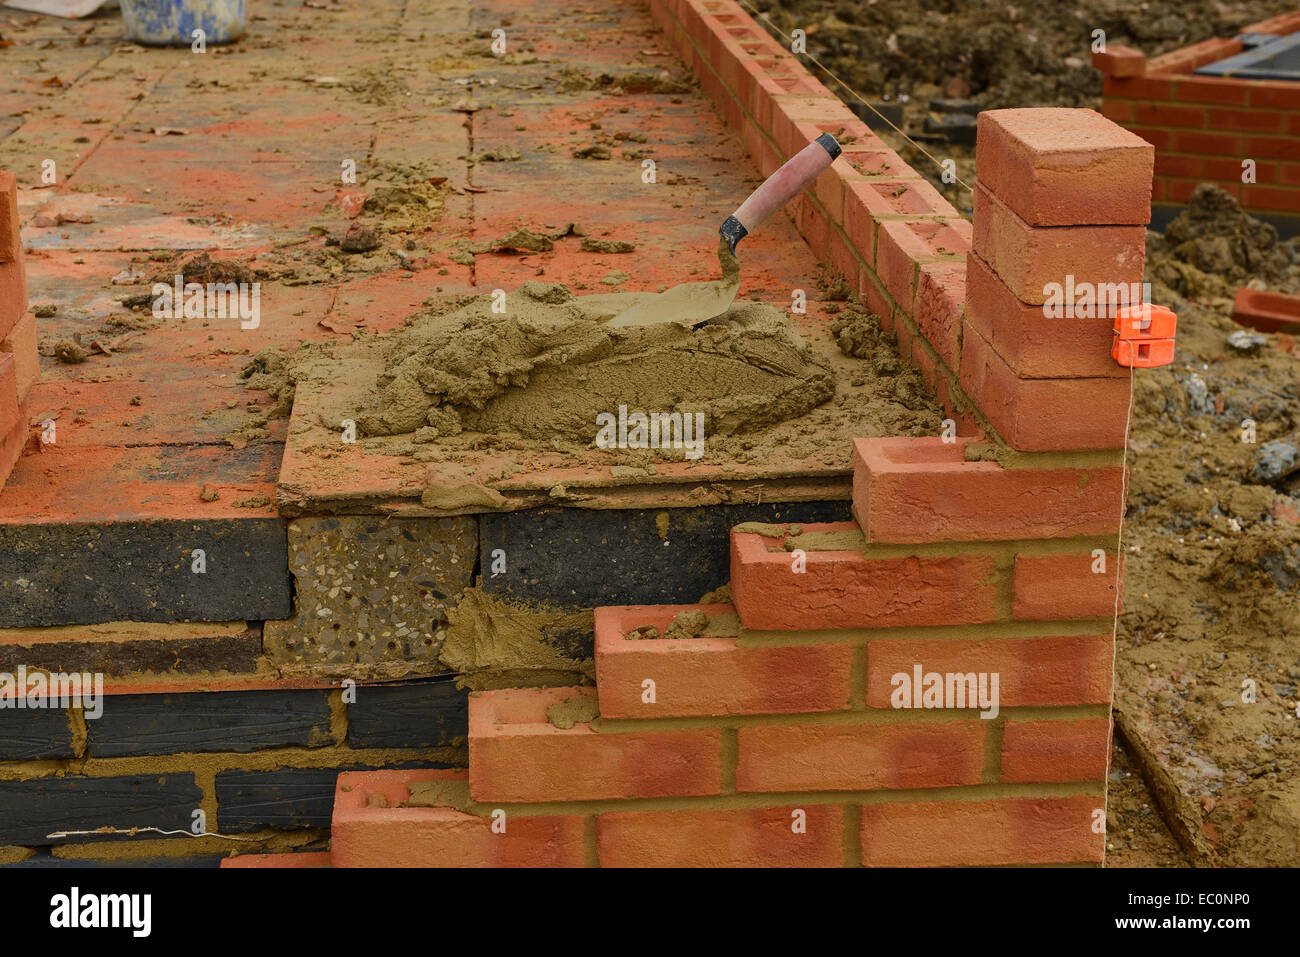 Corner detail of the construction of a house - Stock Image